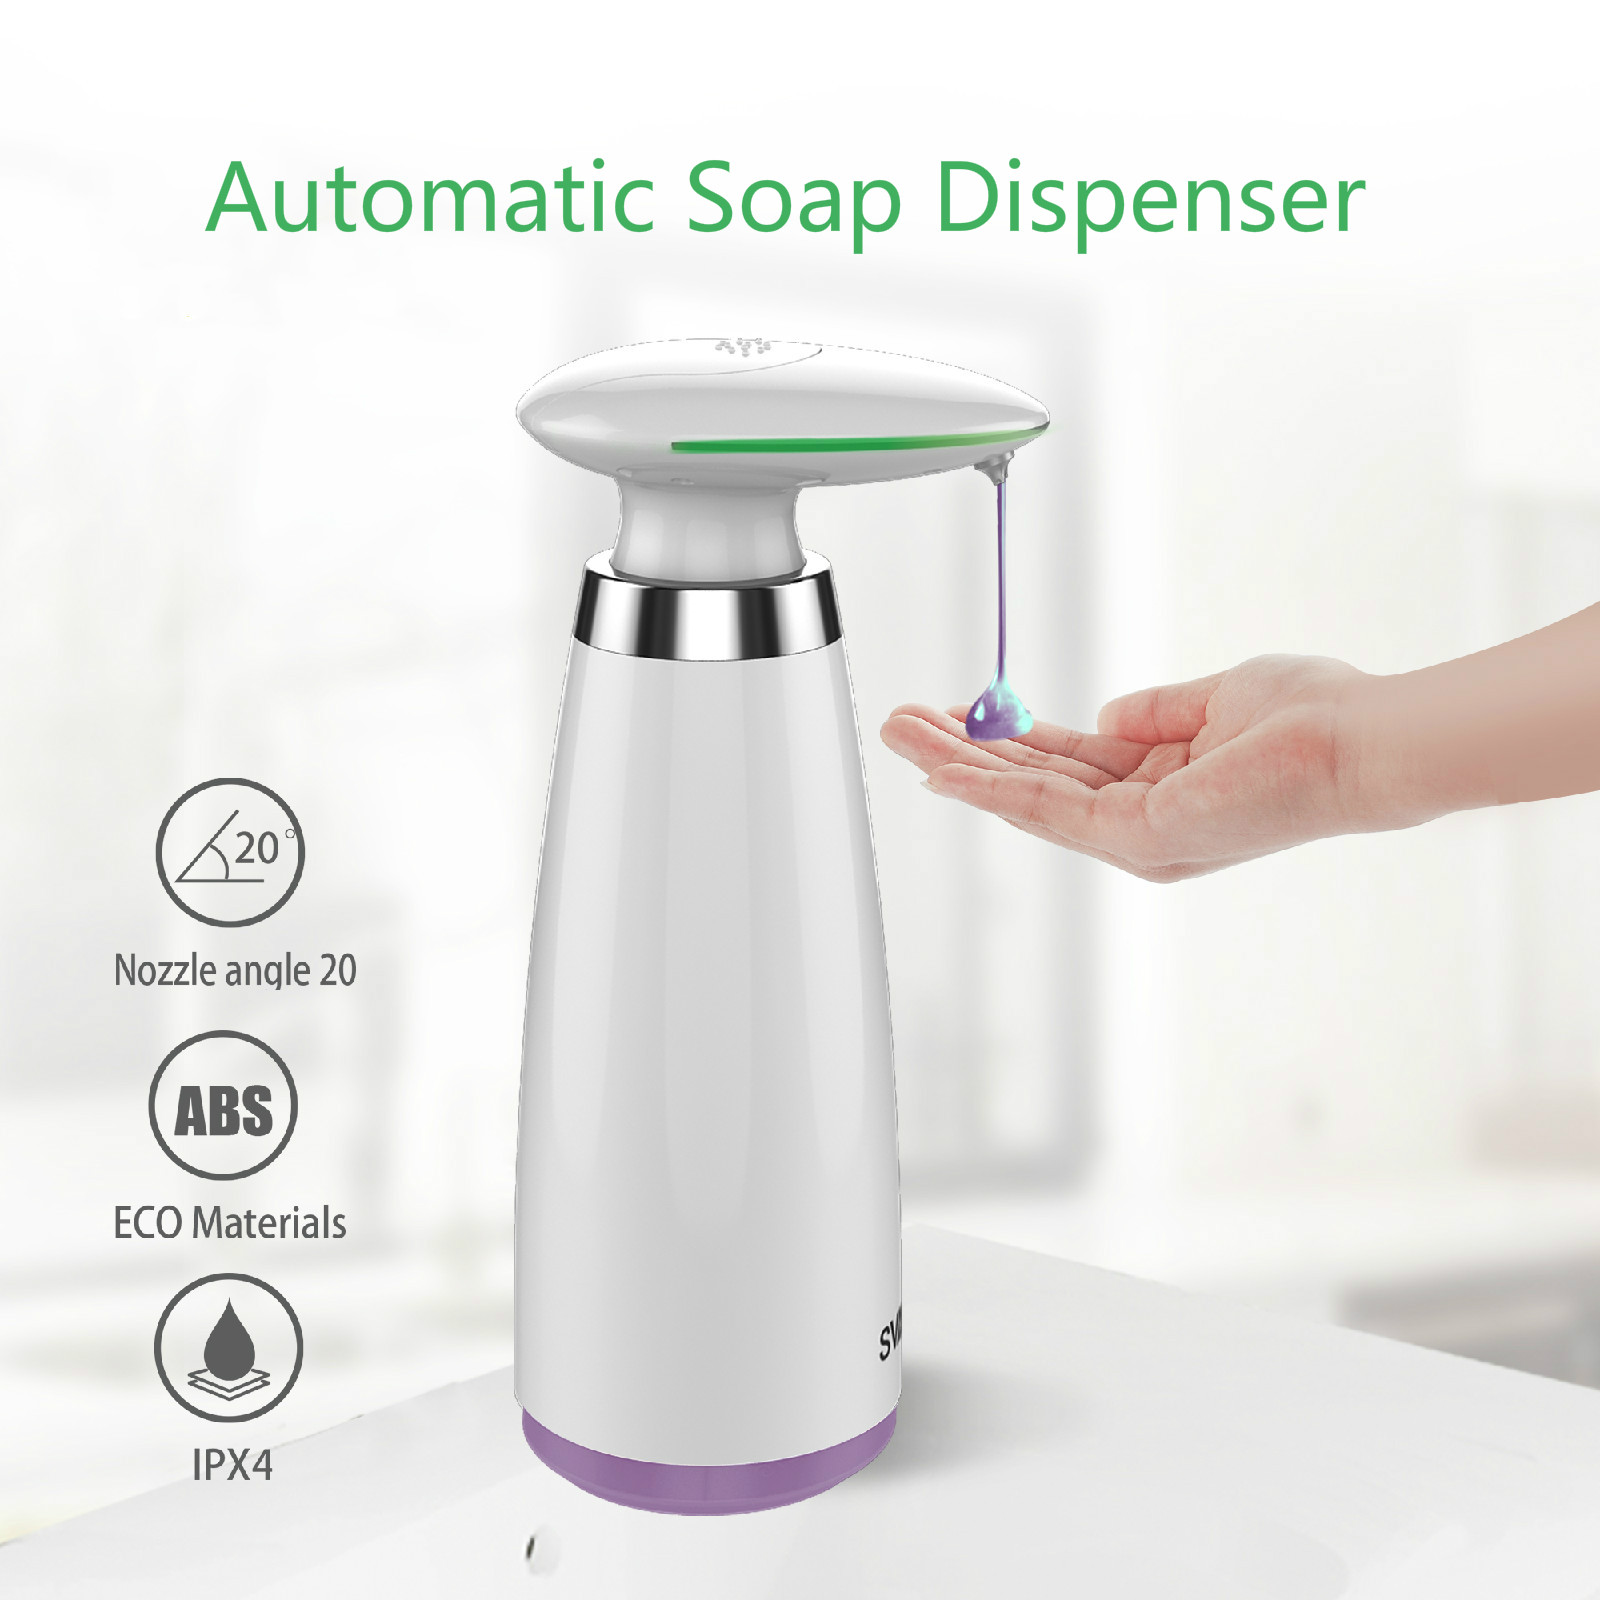 350ml Automatic Soap Dispenser Infrared Motion Hand Free Touchless Sanitizer Kitchen Bathroom Smart Sensor Liquid Soap Dispenser